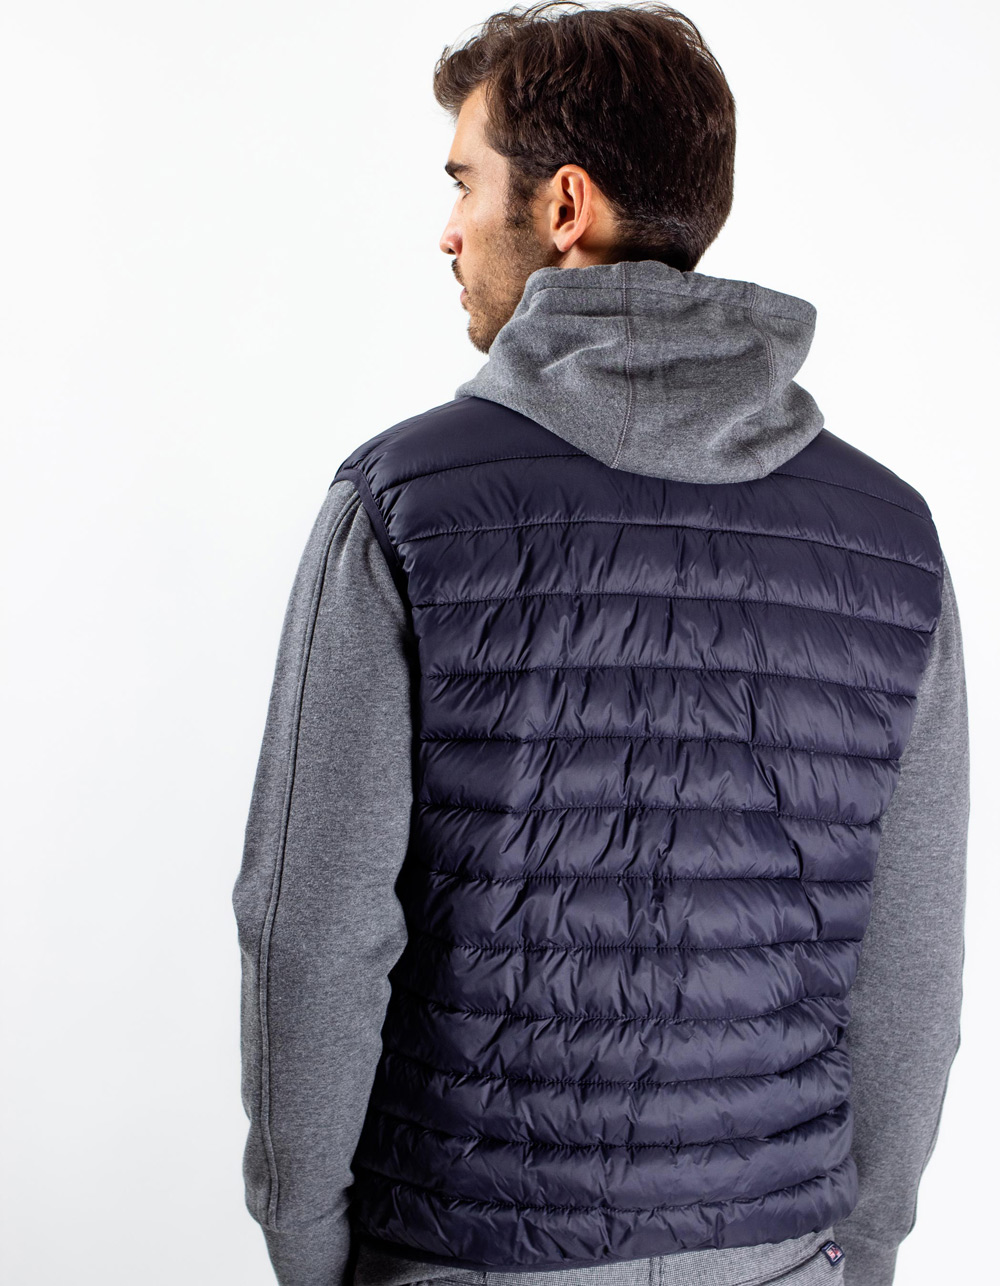 Dark Navy quilted vest - Backside